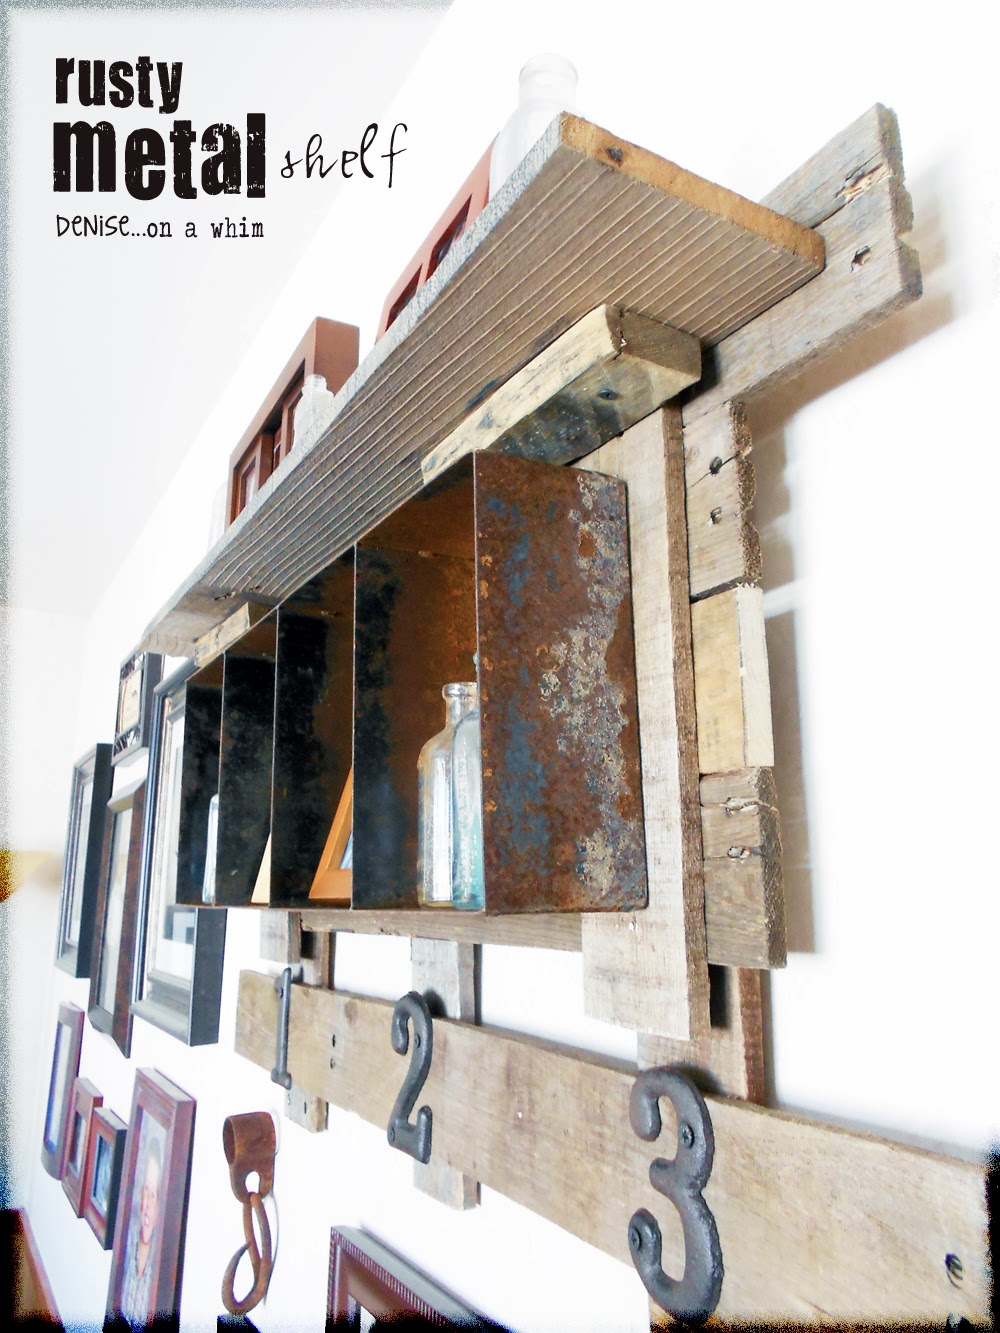 Rustic pallet wood is the perfect backdrop for a rusty bin shelf via http://deniseonawhim.blogspot.com